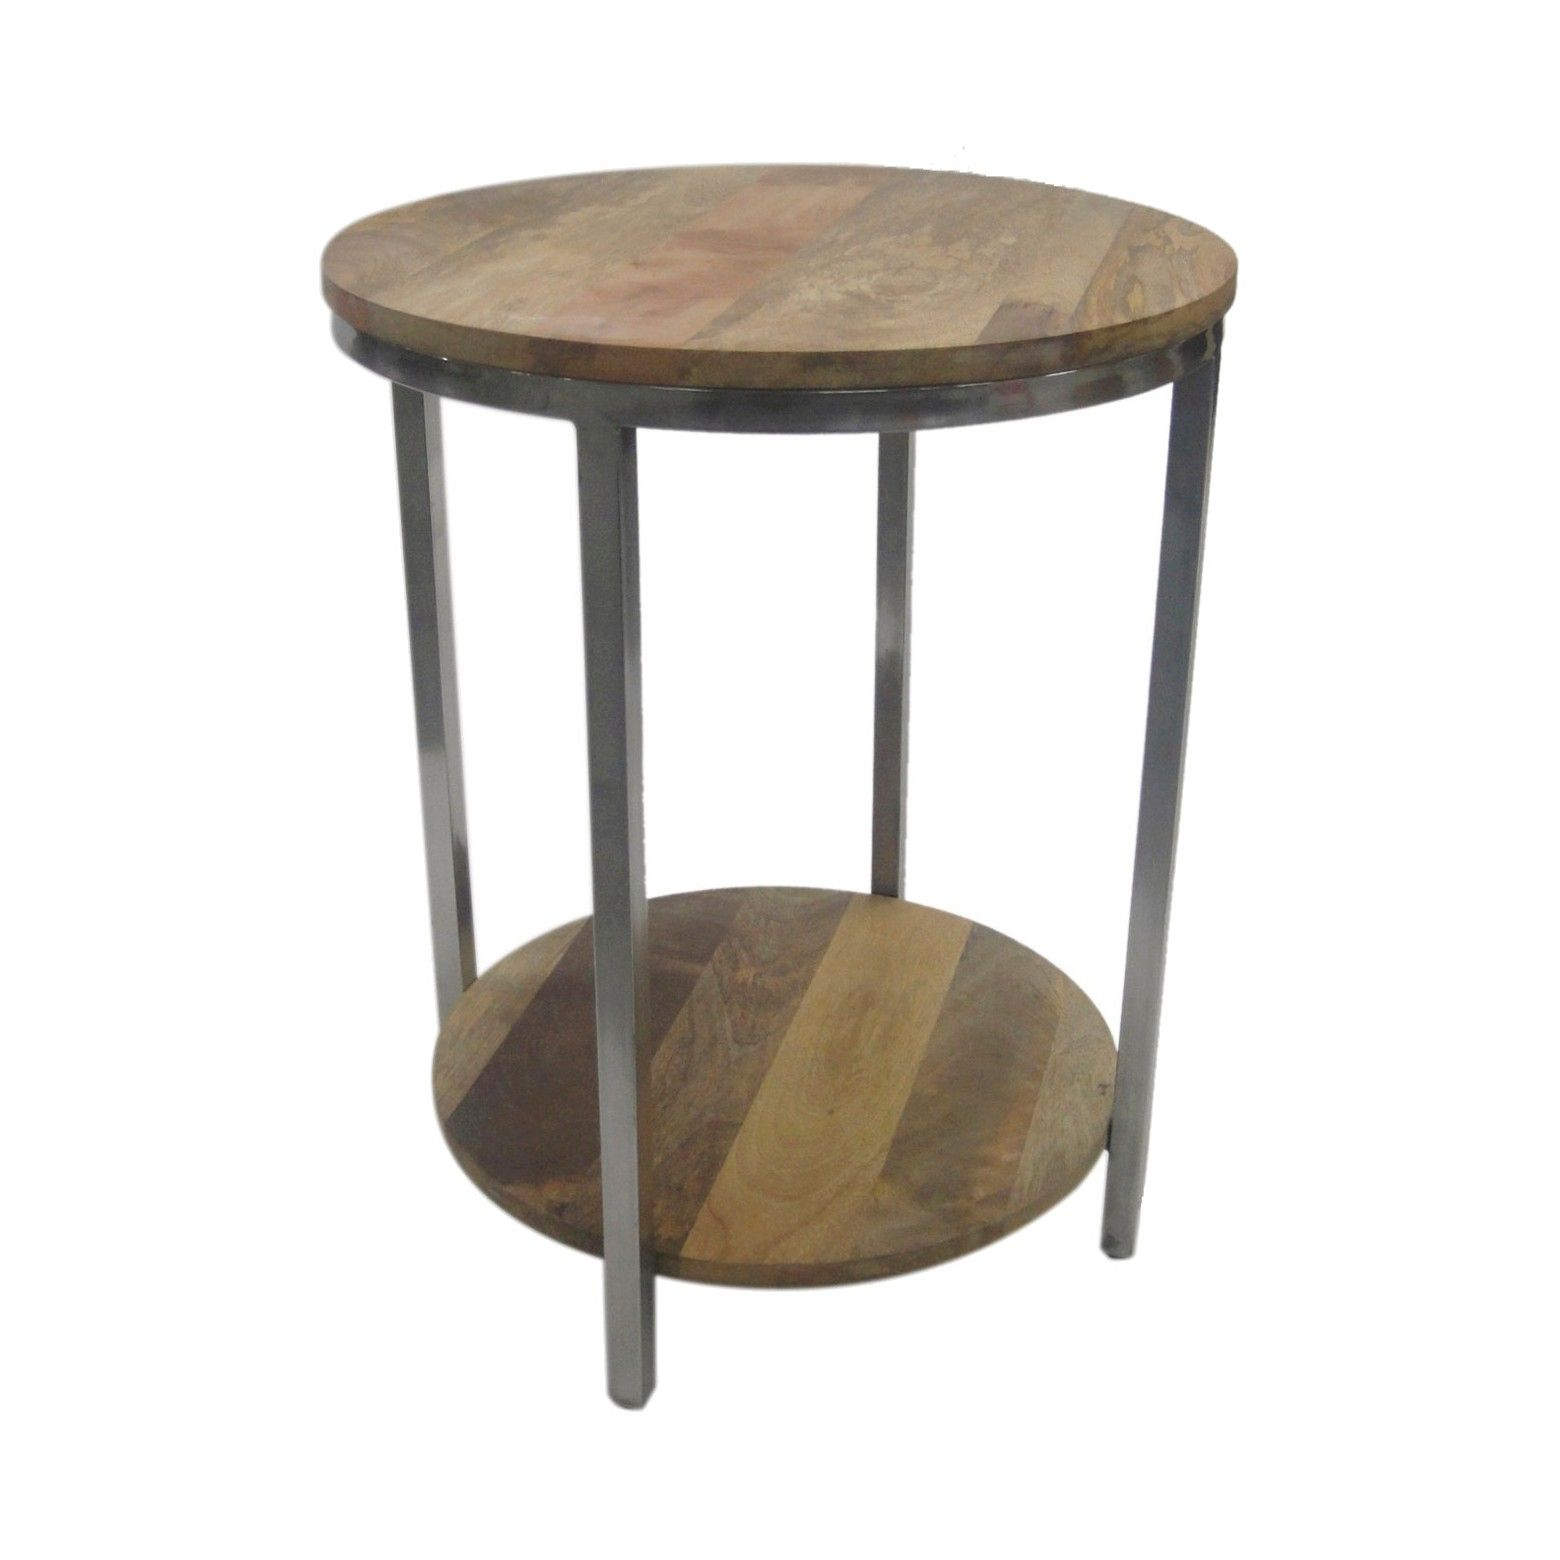 threshold berwyn end table metal and wood rustic brown minimal owings accent round side extra long placemats target console imitation furniture retro kitchen chairs pier one